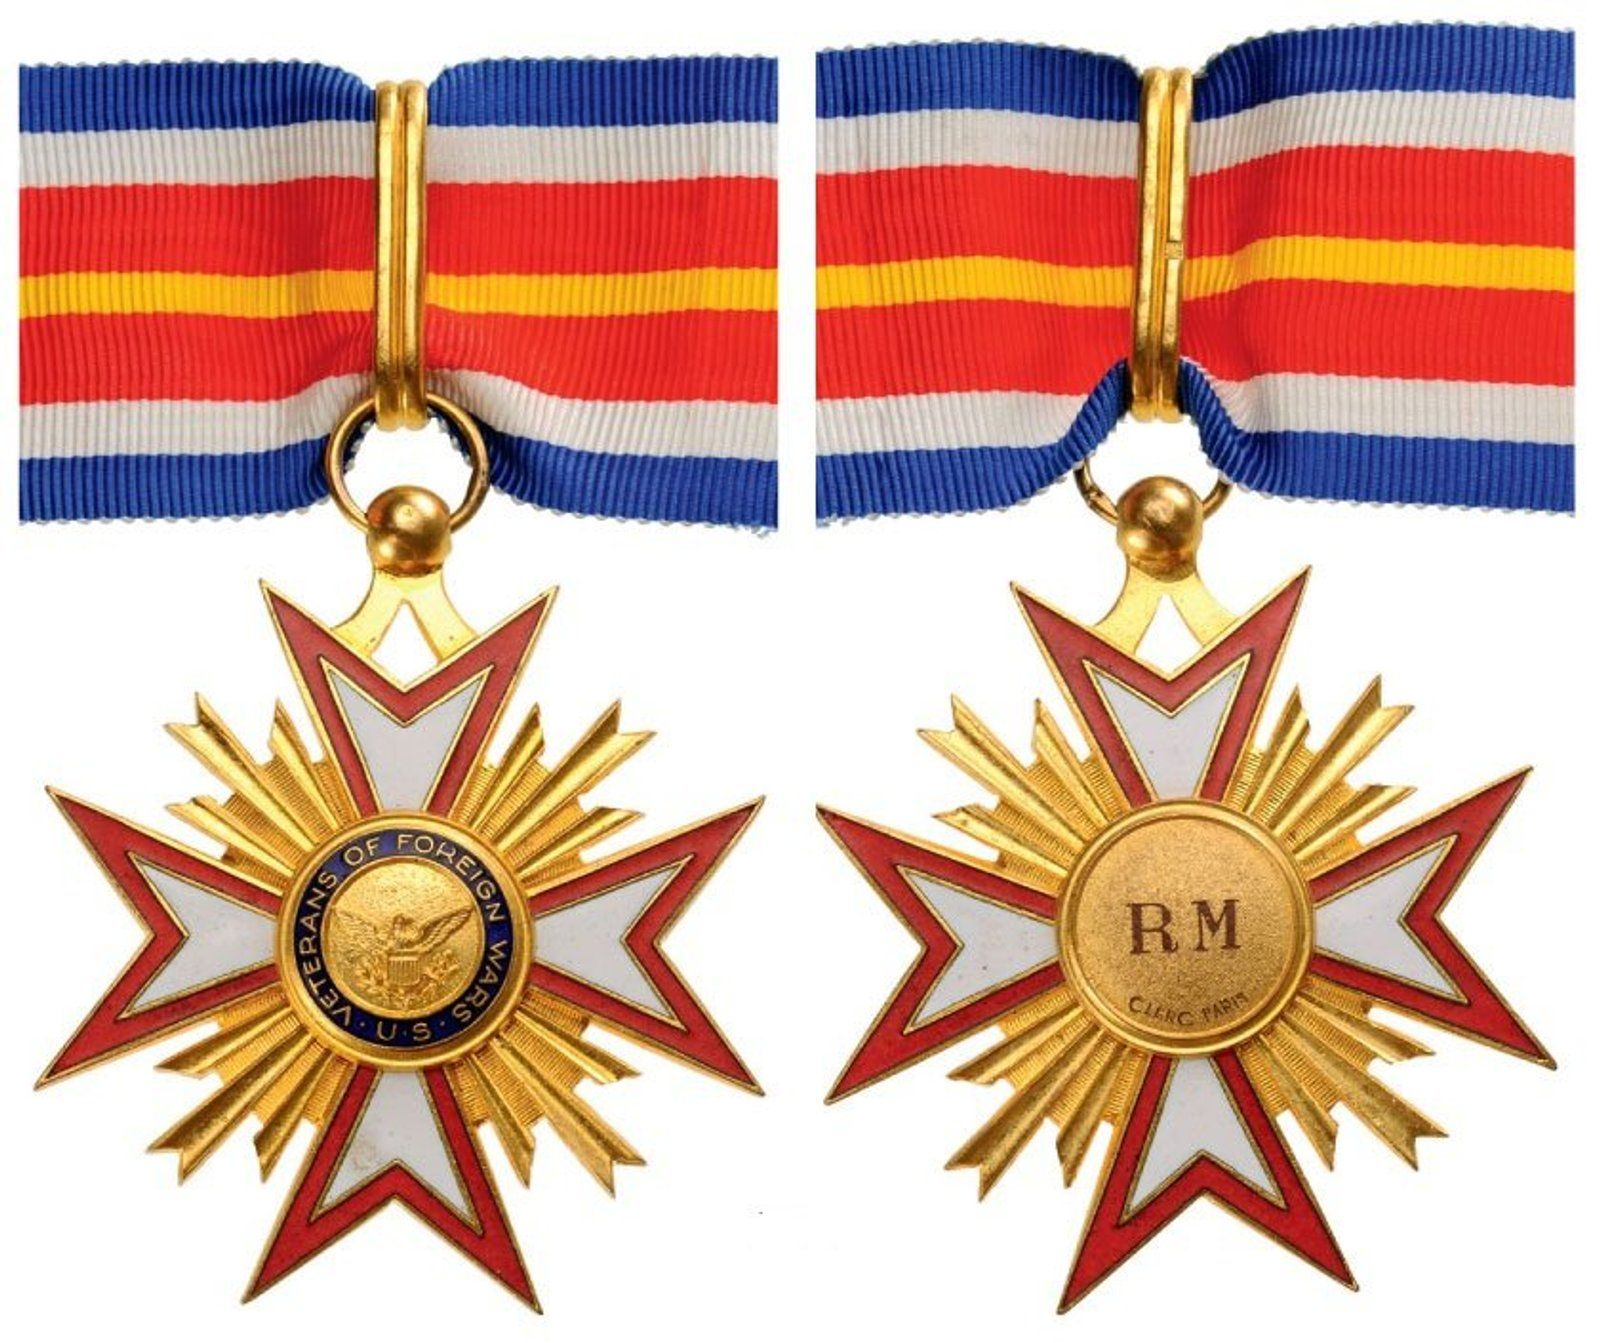 USA DECORATION OF THE ASSOCIATION OF VETERANS OF FOREIGN